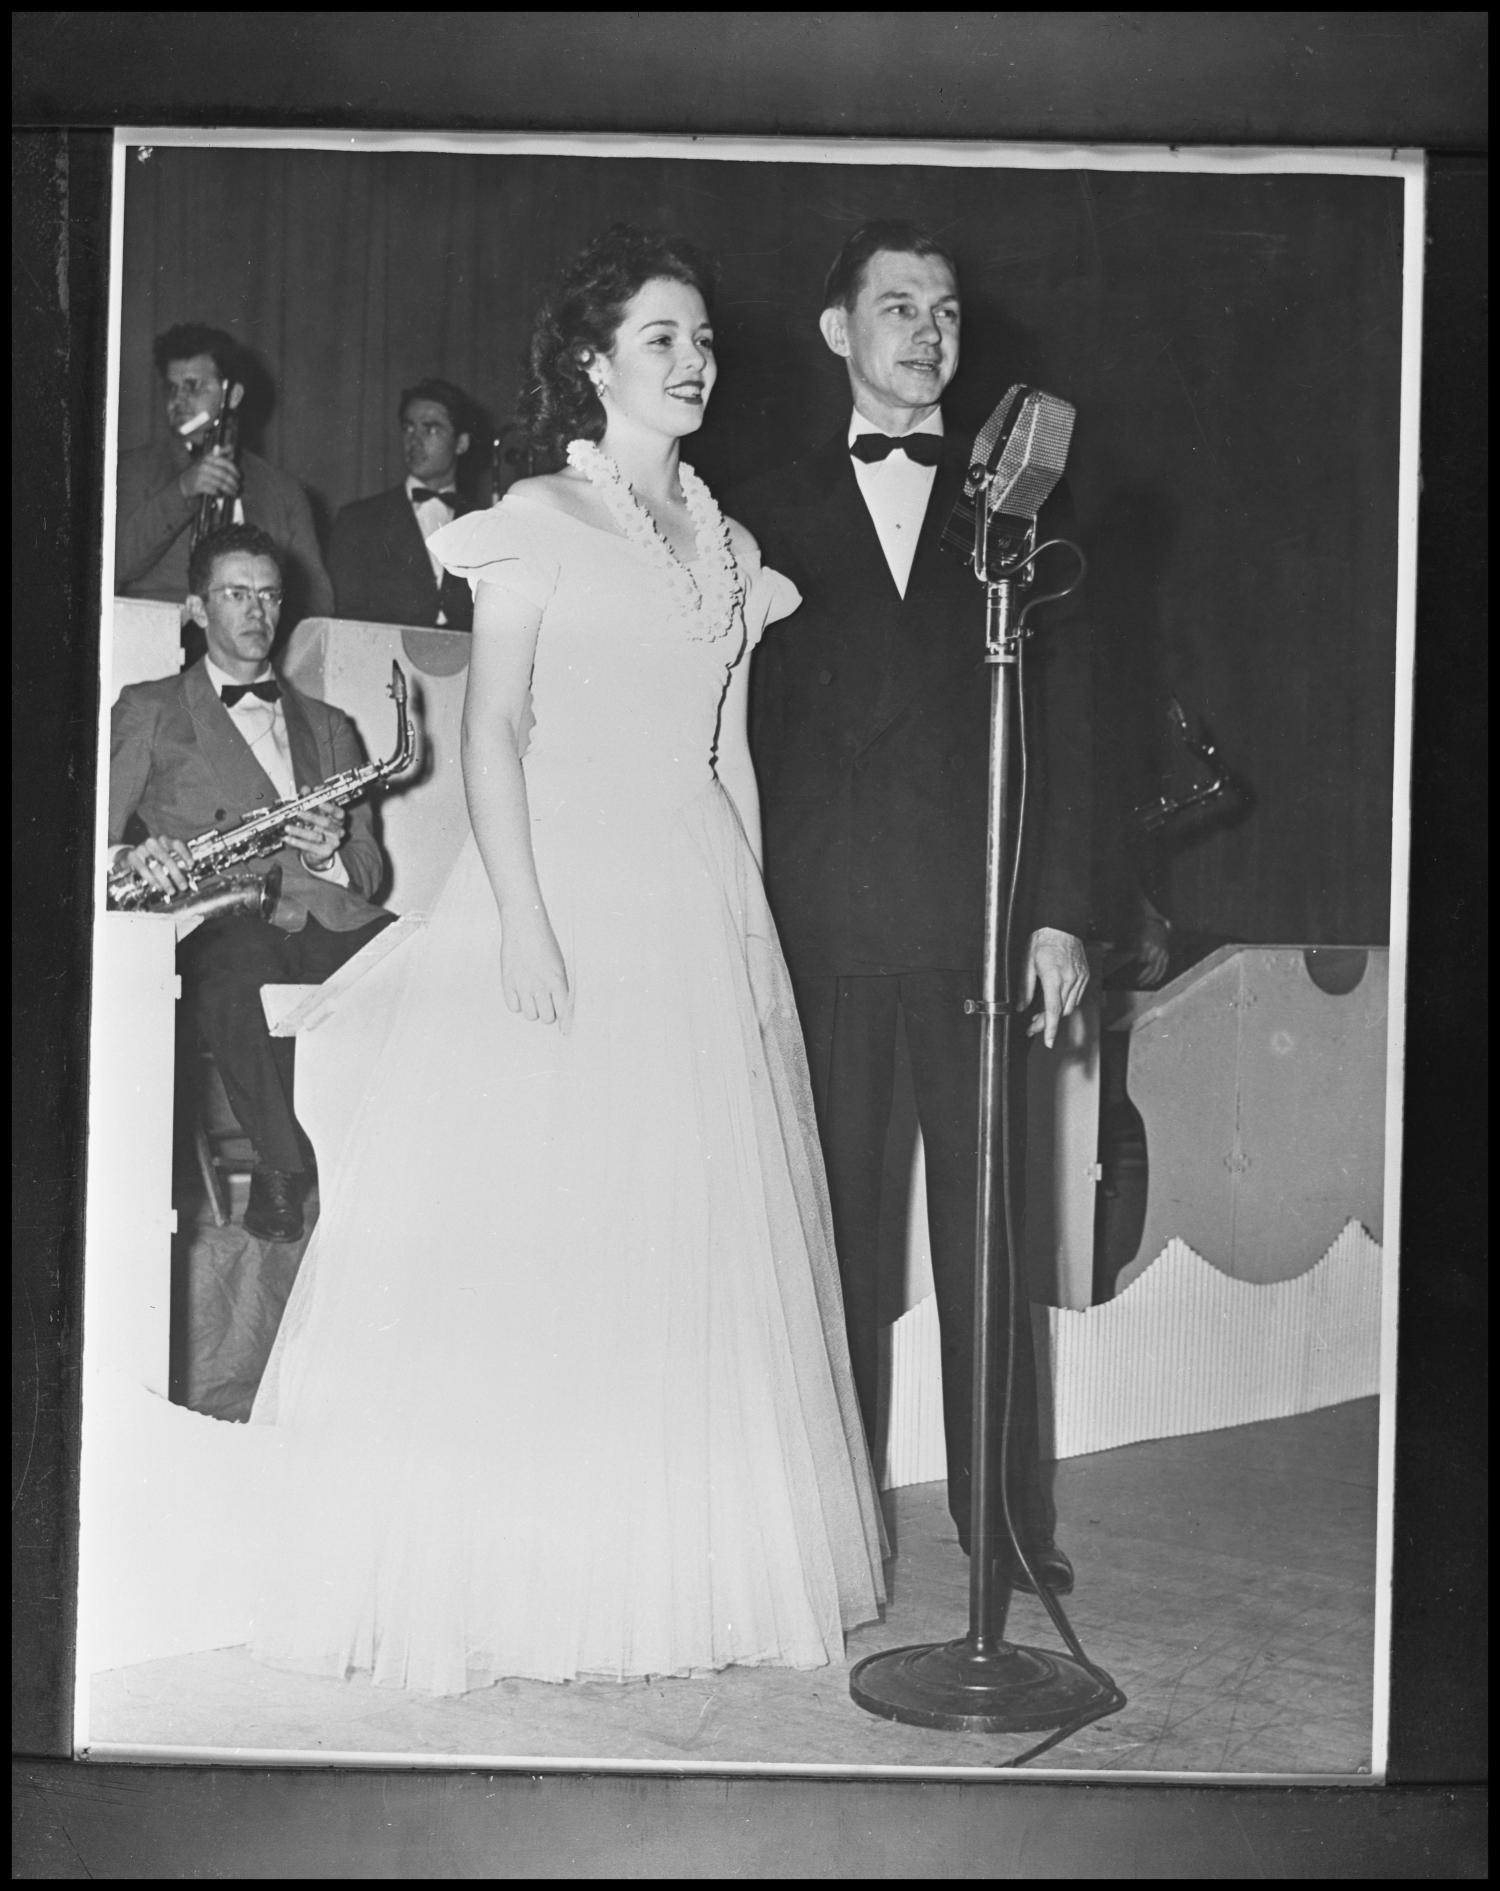 Black and white photo of a white man and woman standing in front of a microphone. She wears a floor length white dress and he wears a tuxedo. Members of a big band can be seen behind them.